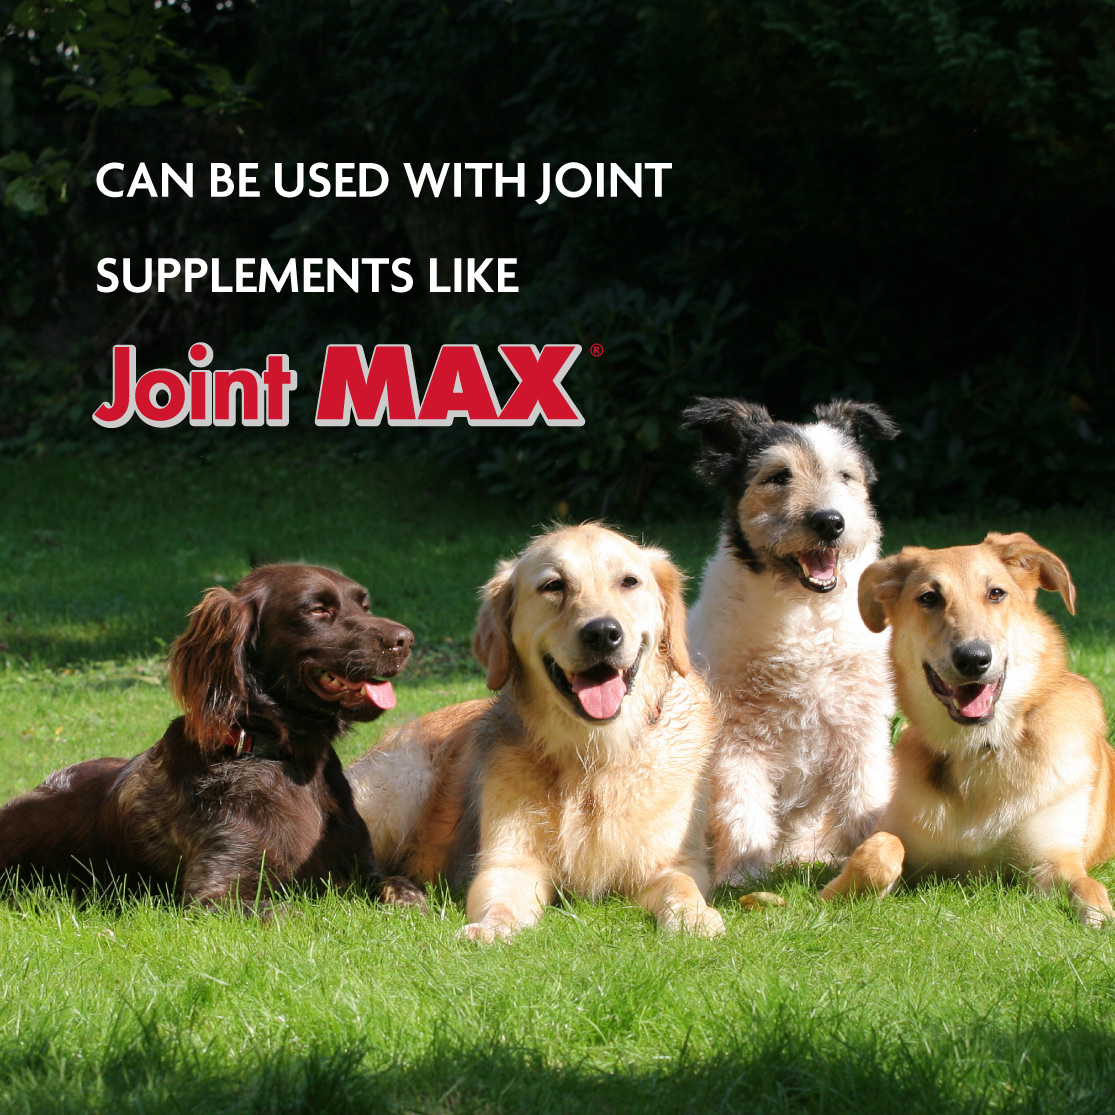 Can be used with joint supplements like Joint MAX